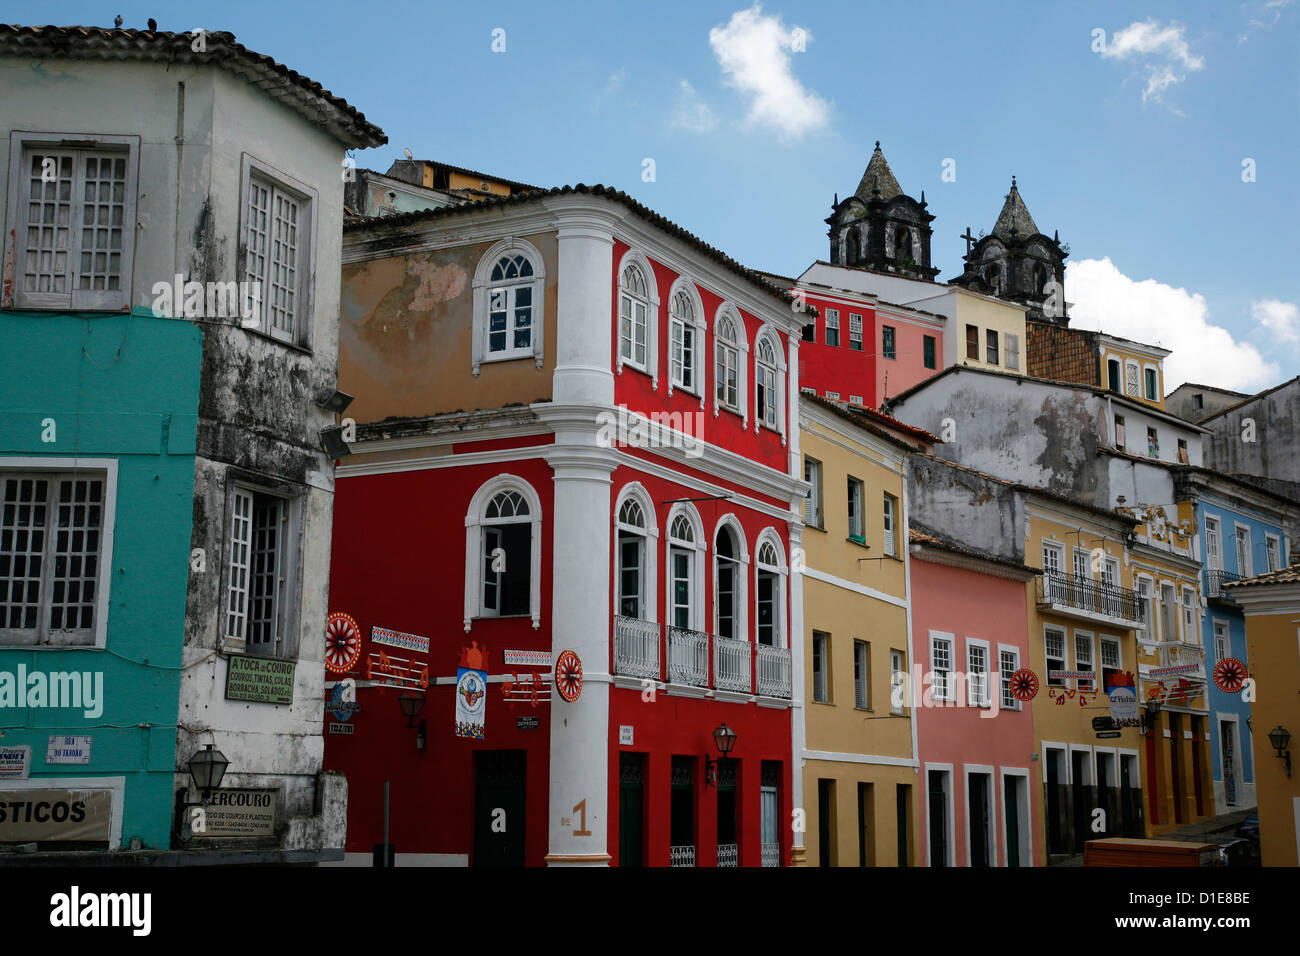 Cobbled streets and colonial architecture, Largo de Pelourinho, Salvador, Bahia, Brazil, South America - Stock Image